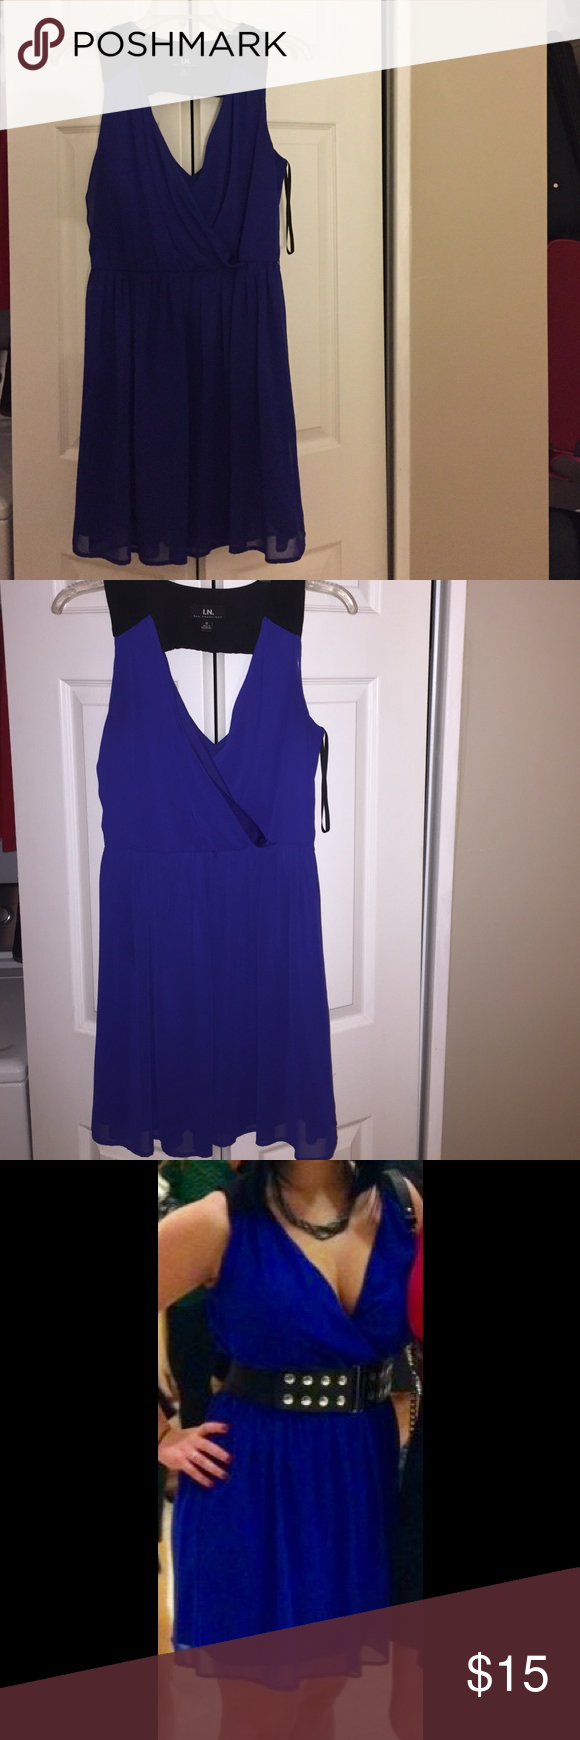 Cocktail dress size medium Pretty royal blue cocktail dress to wear for any special occasion (belt in photos not included). Very flattering on the bust and waist. Offers welcome! Dresses